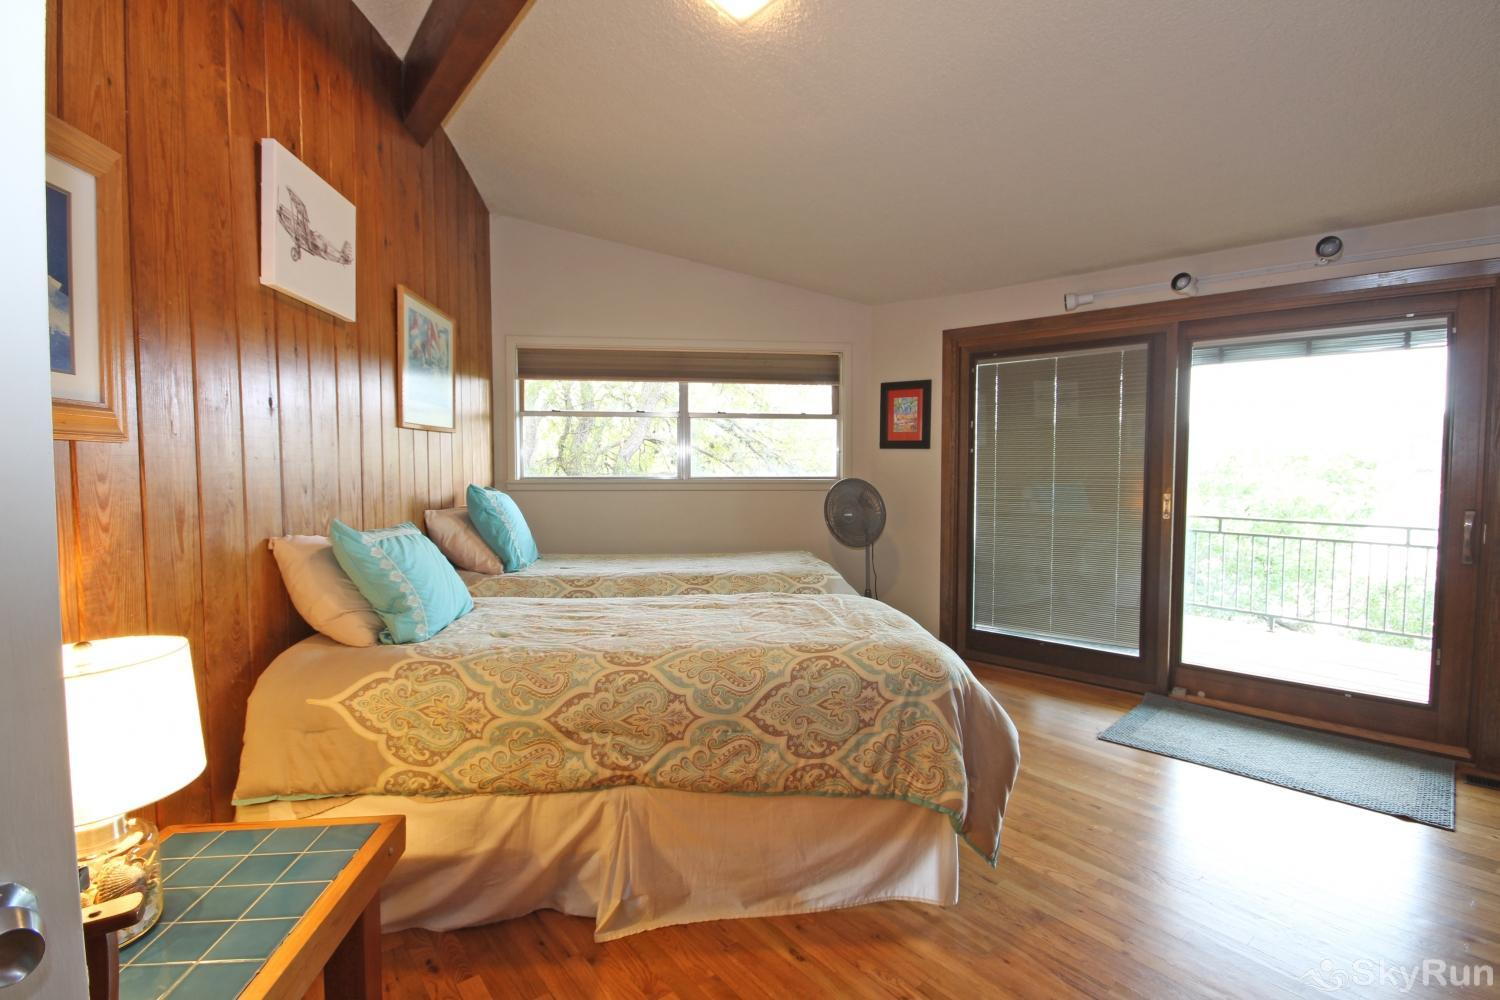 SKY VIEW LAKE HOUSE Fourth bedroom with two twin beds